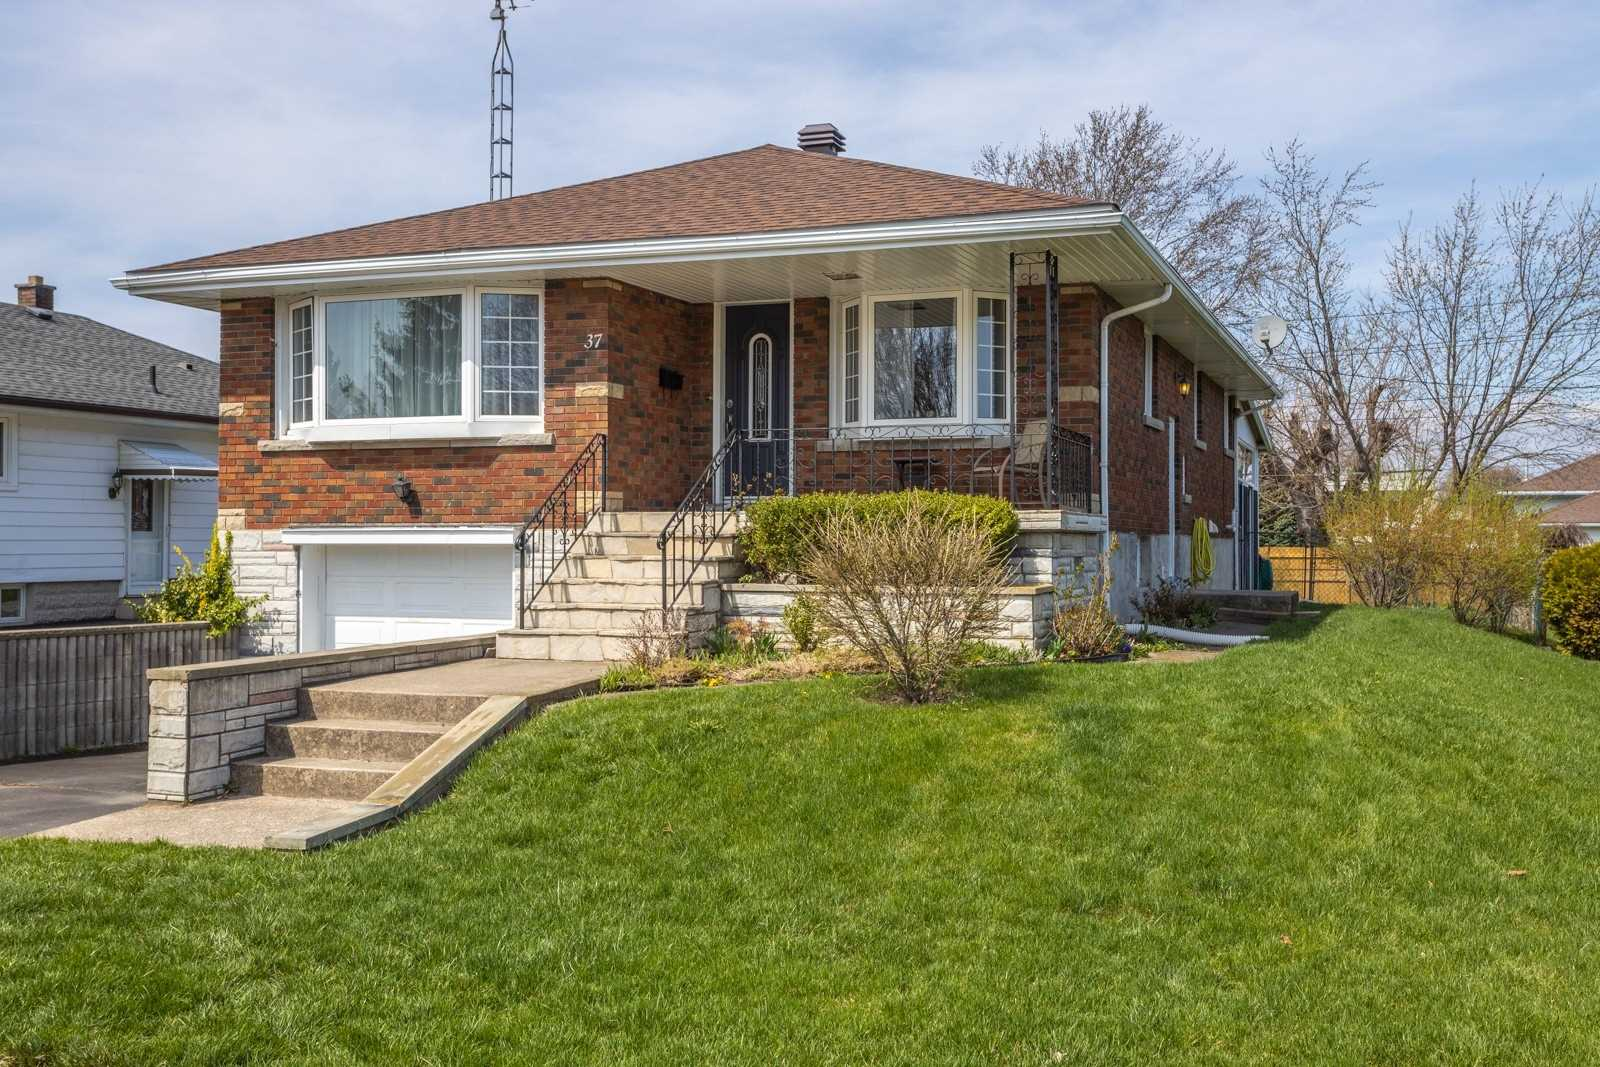 37 South Cres